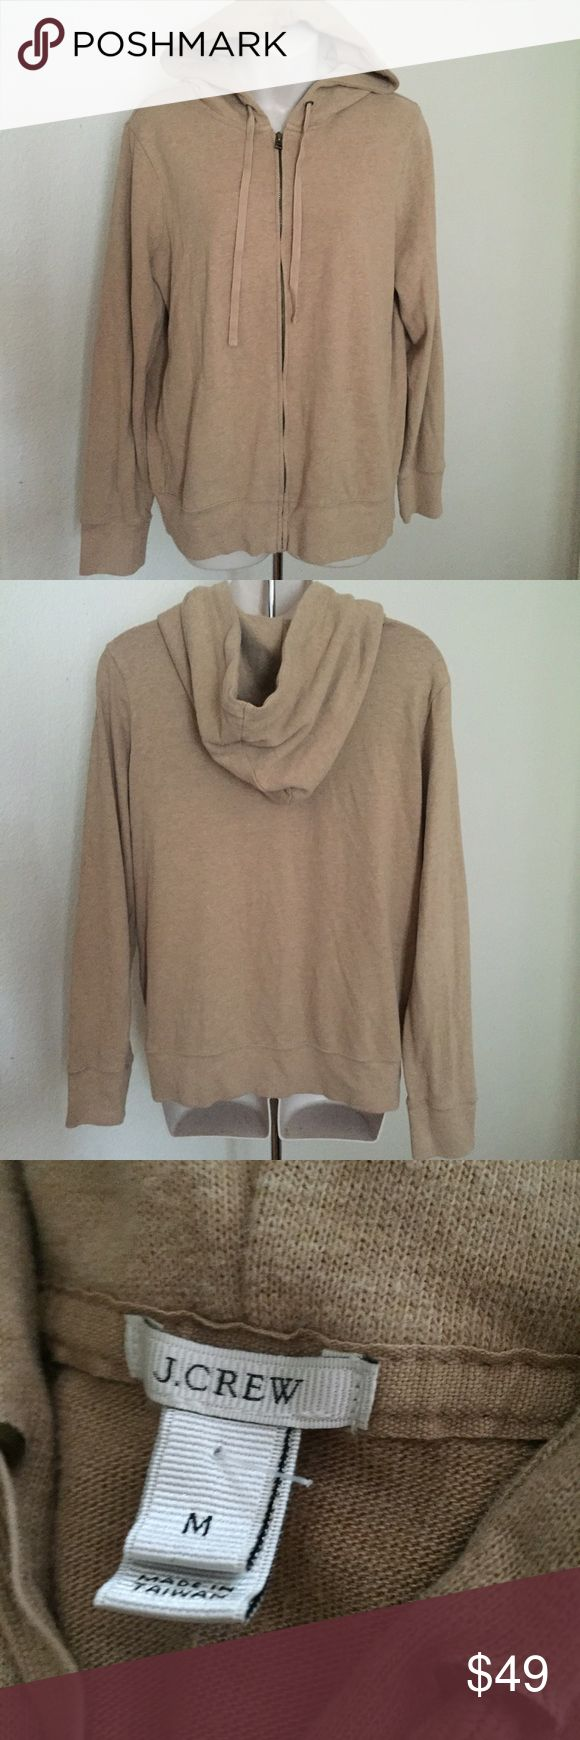 """J. Crew Camel Zip up hoodie size medium This is a gorgeous J.Crew zip up hoodie. Super soft cotton/polyester blend. Size medium. Camel color light brown. Made of corton/polyester/rayon blend. Bust 44 length 24"""". Oversized fit. New condition never worn. J. Crew Tops Sweatshirts & Hoodies"""